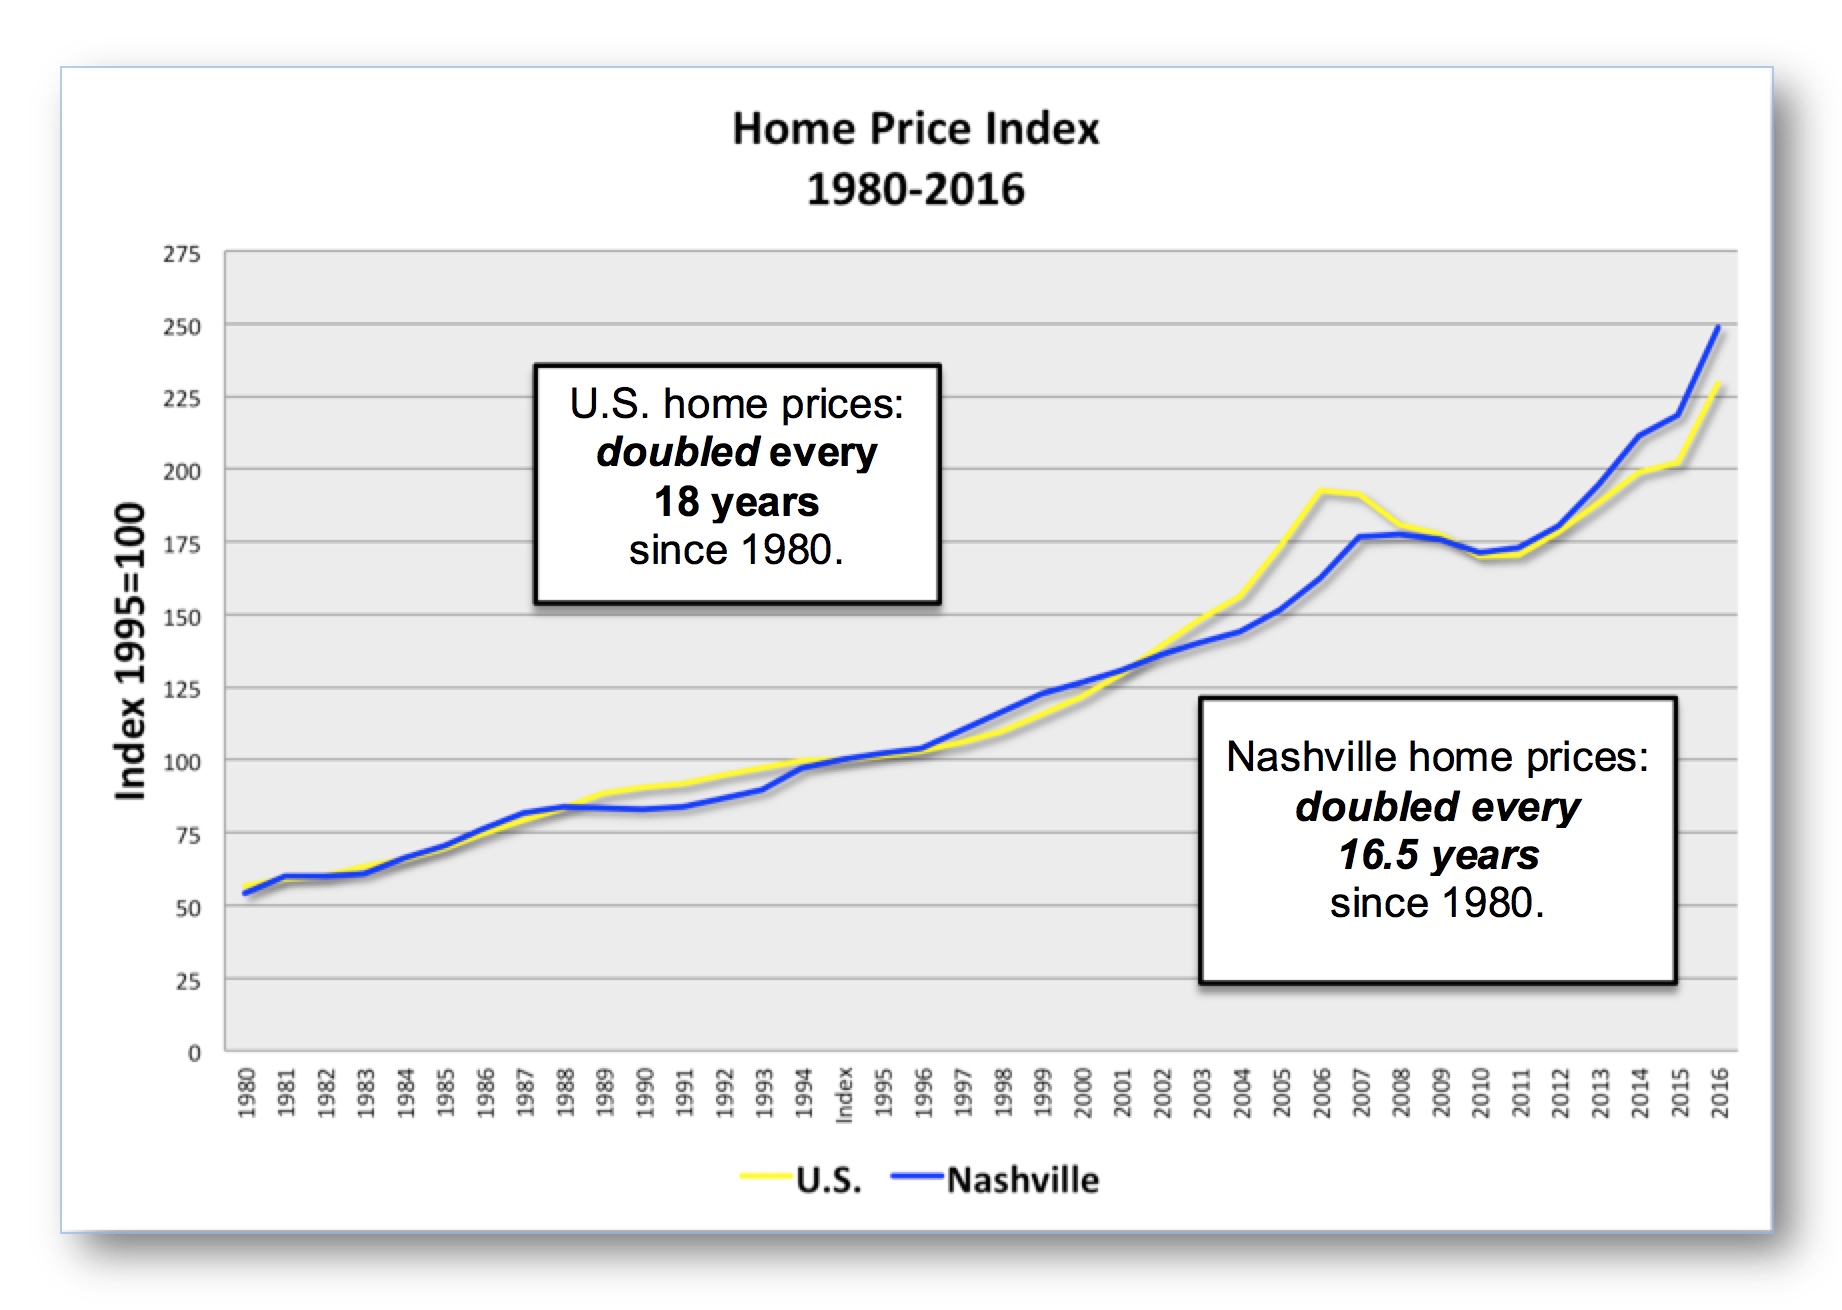 Home Price index